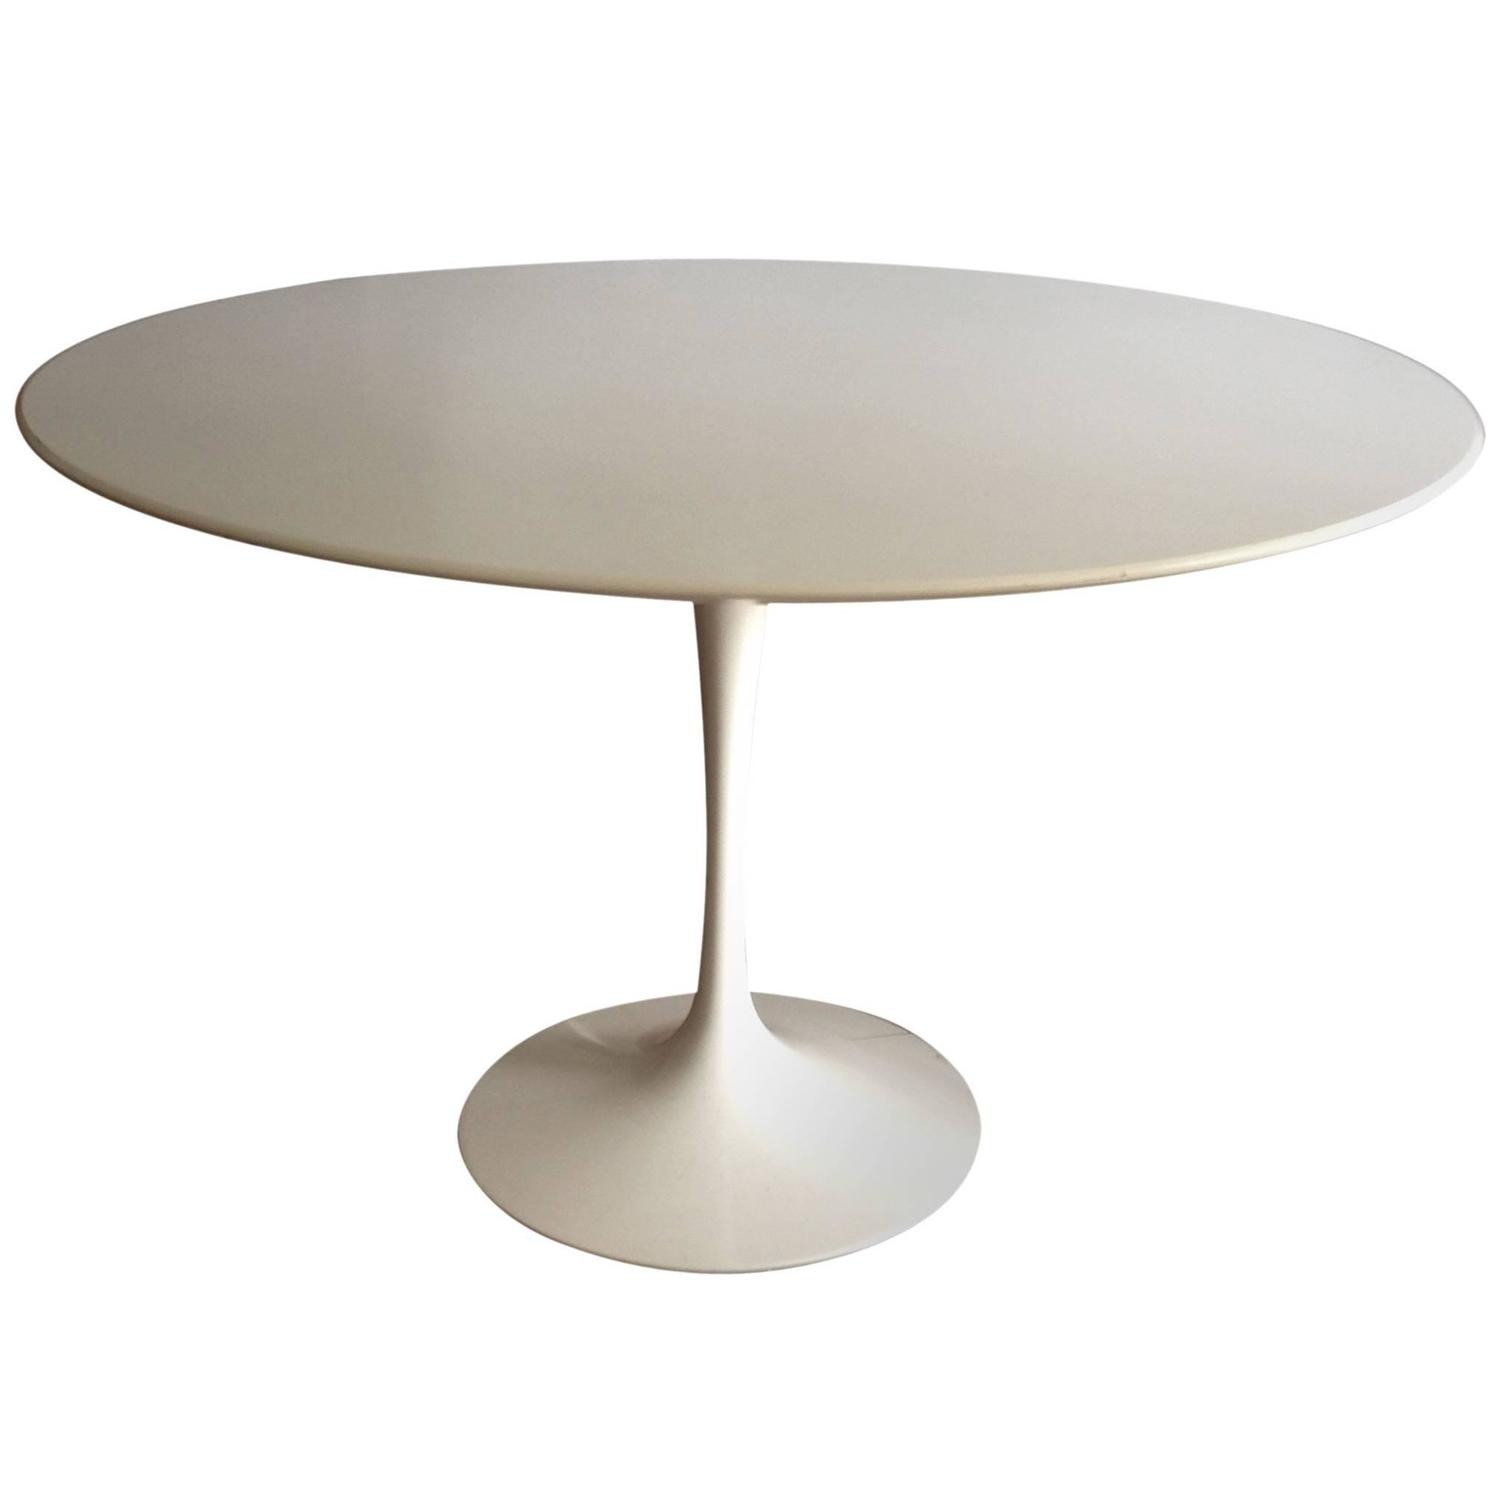 Eero Saarinen Round Dining Table At 1stdibs